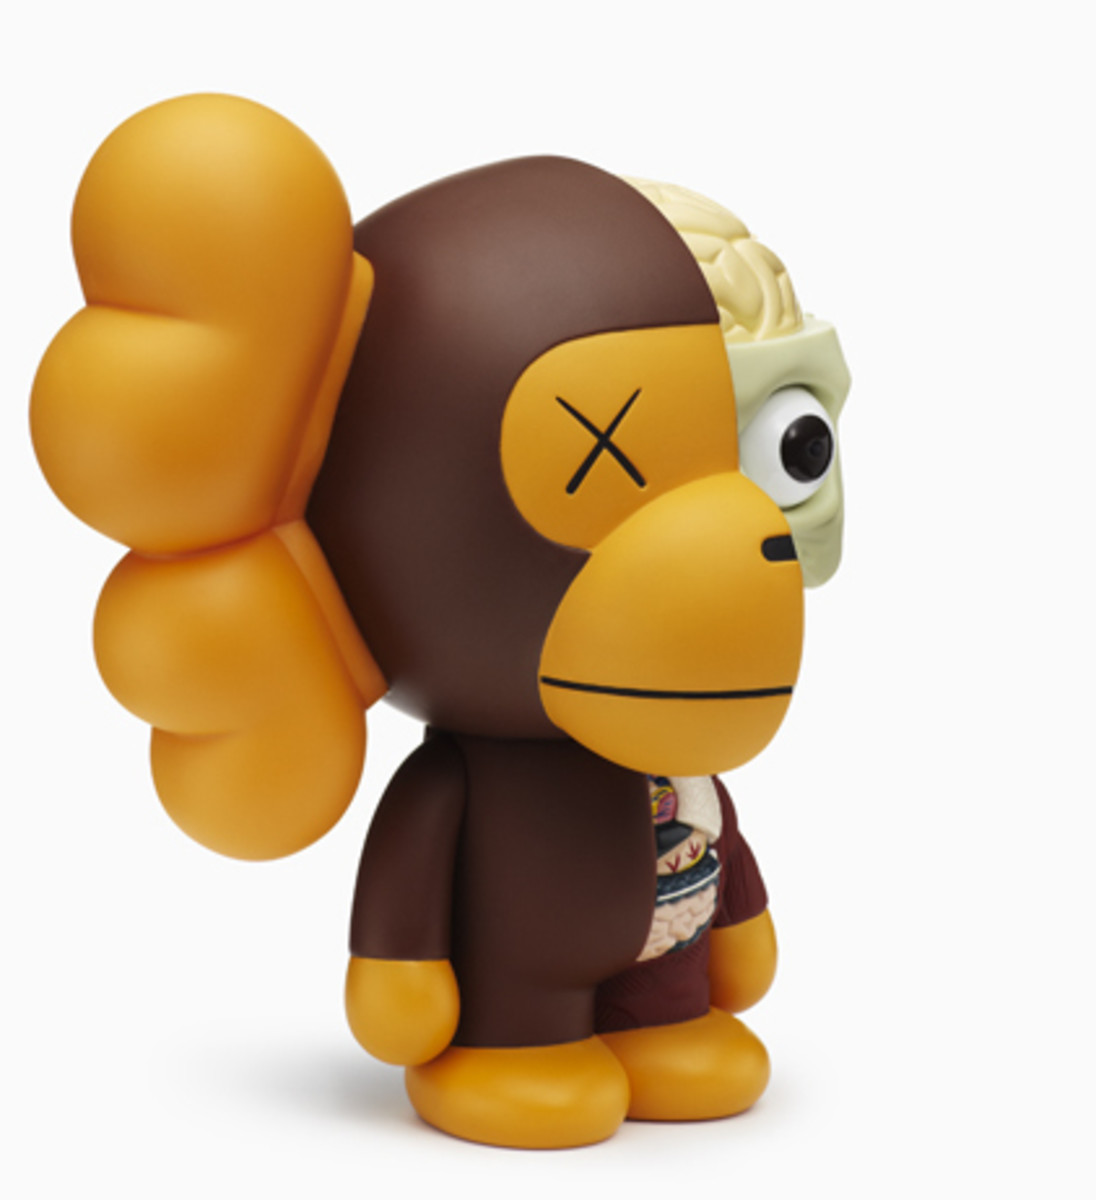 a-bathing-ape-kaws-kaws-milo-dissected companion-07